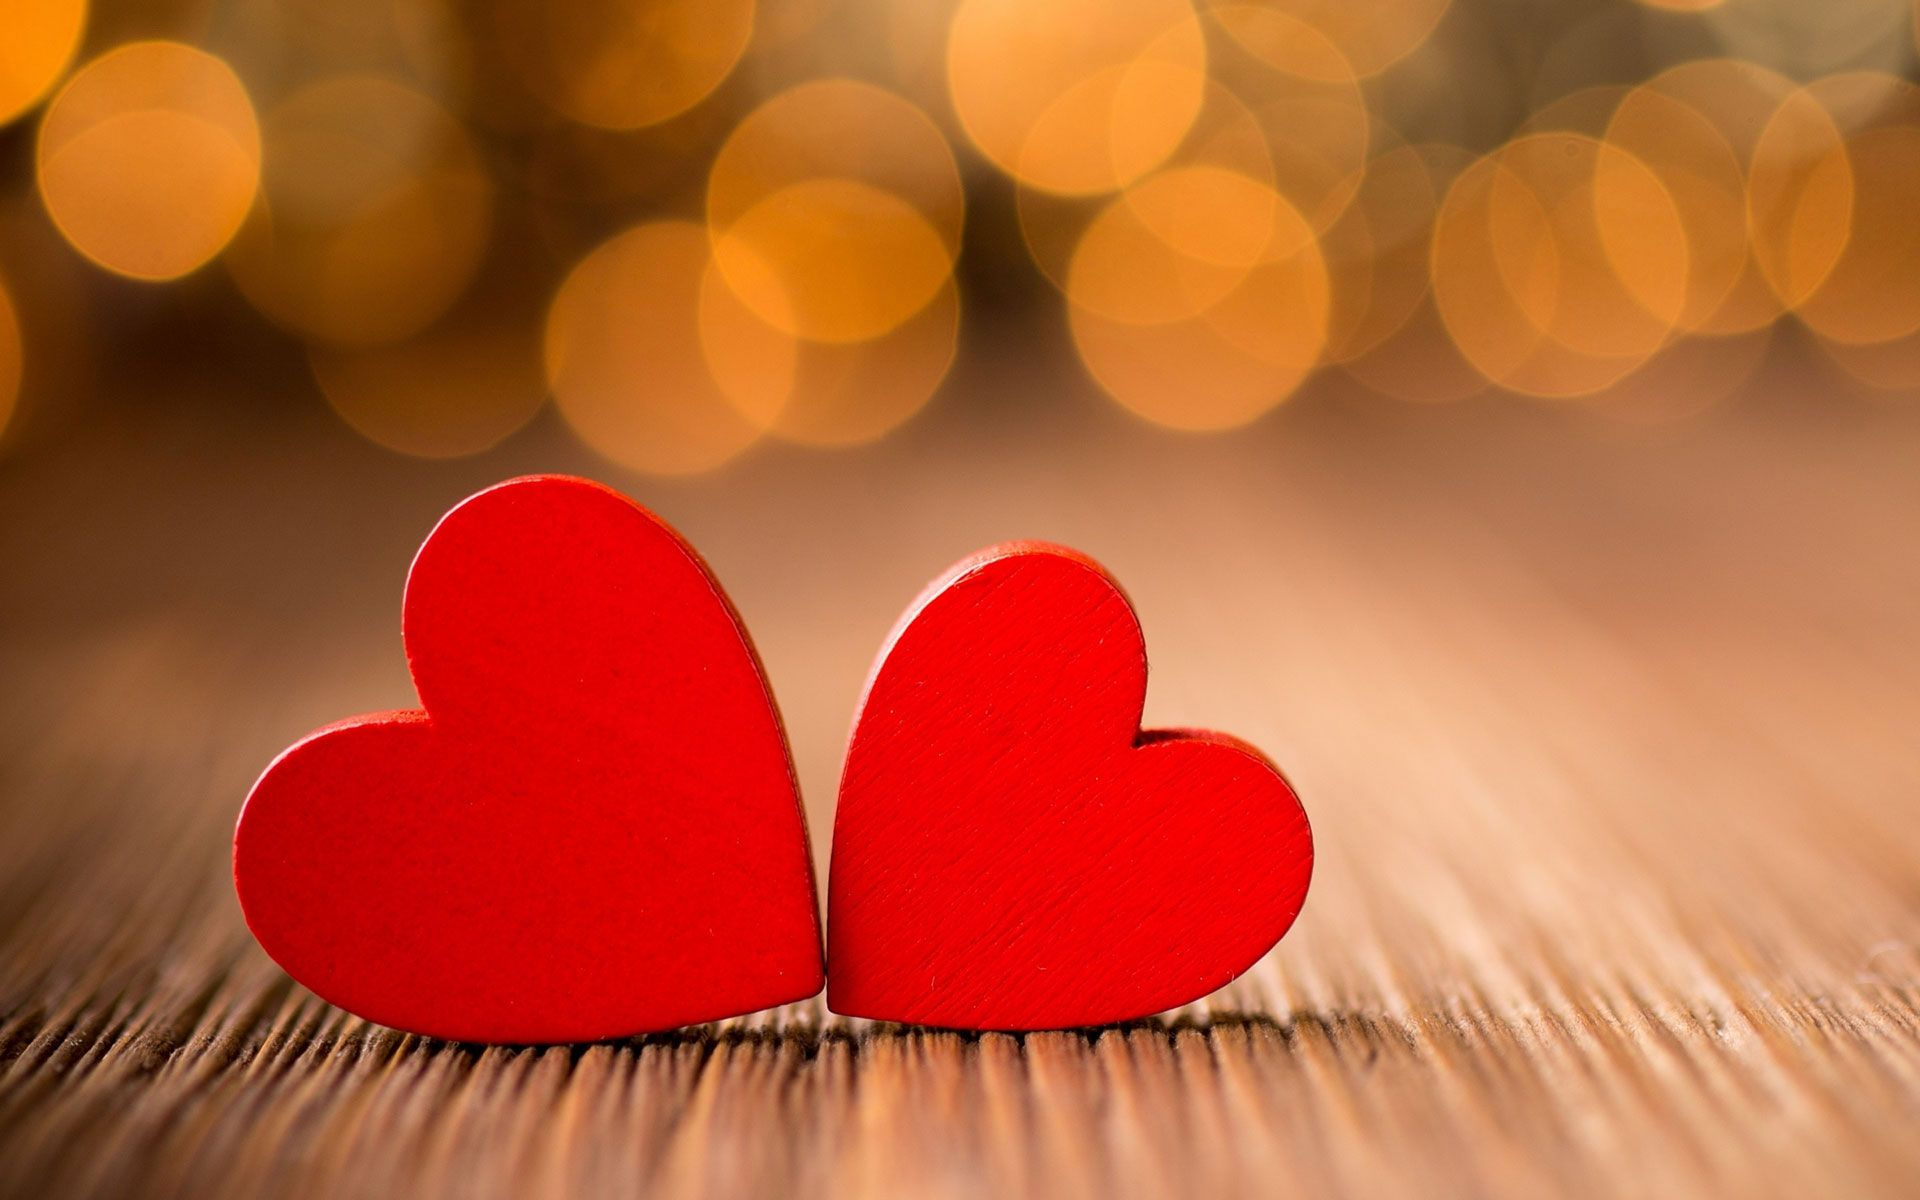 Free Download Cute Love Wallpapers For Mobile Personal